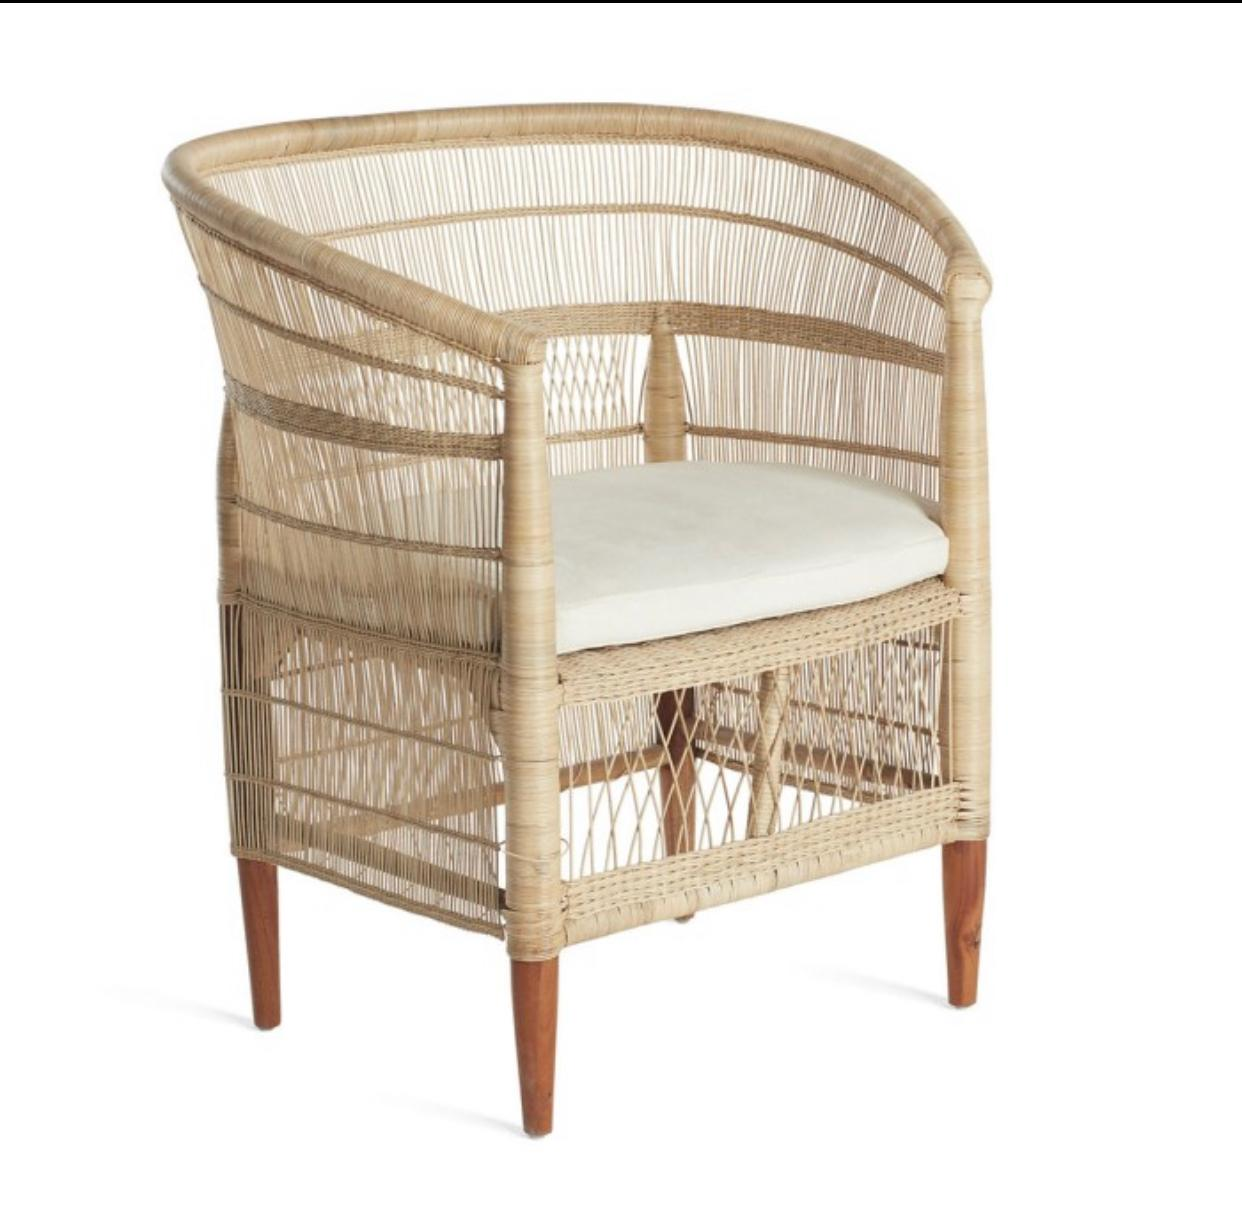 Garden Outdoor Furniture Wicker Rattan Bamboo Malawi Chair for Hotels and Restaurants